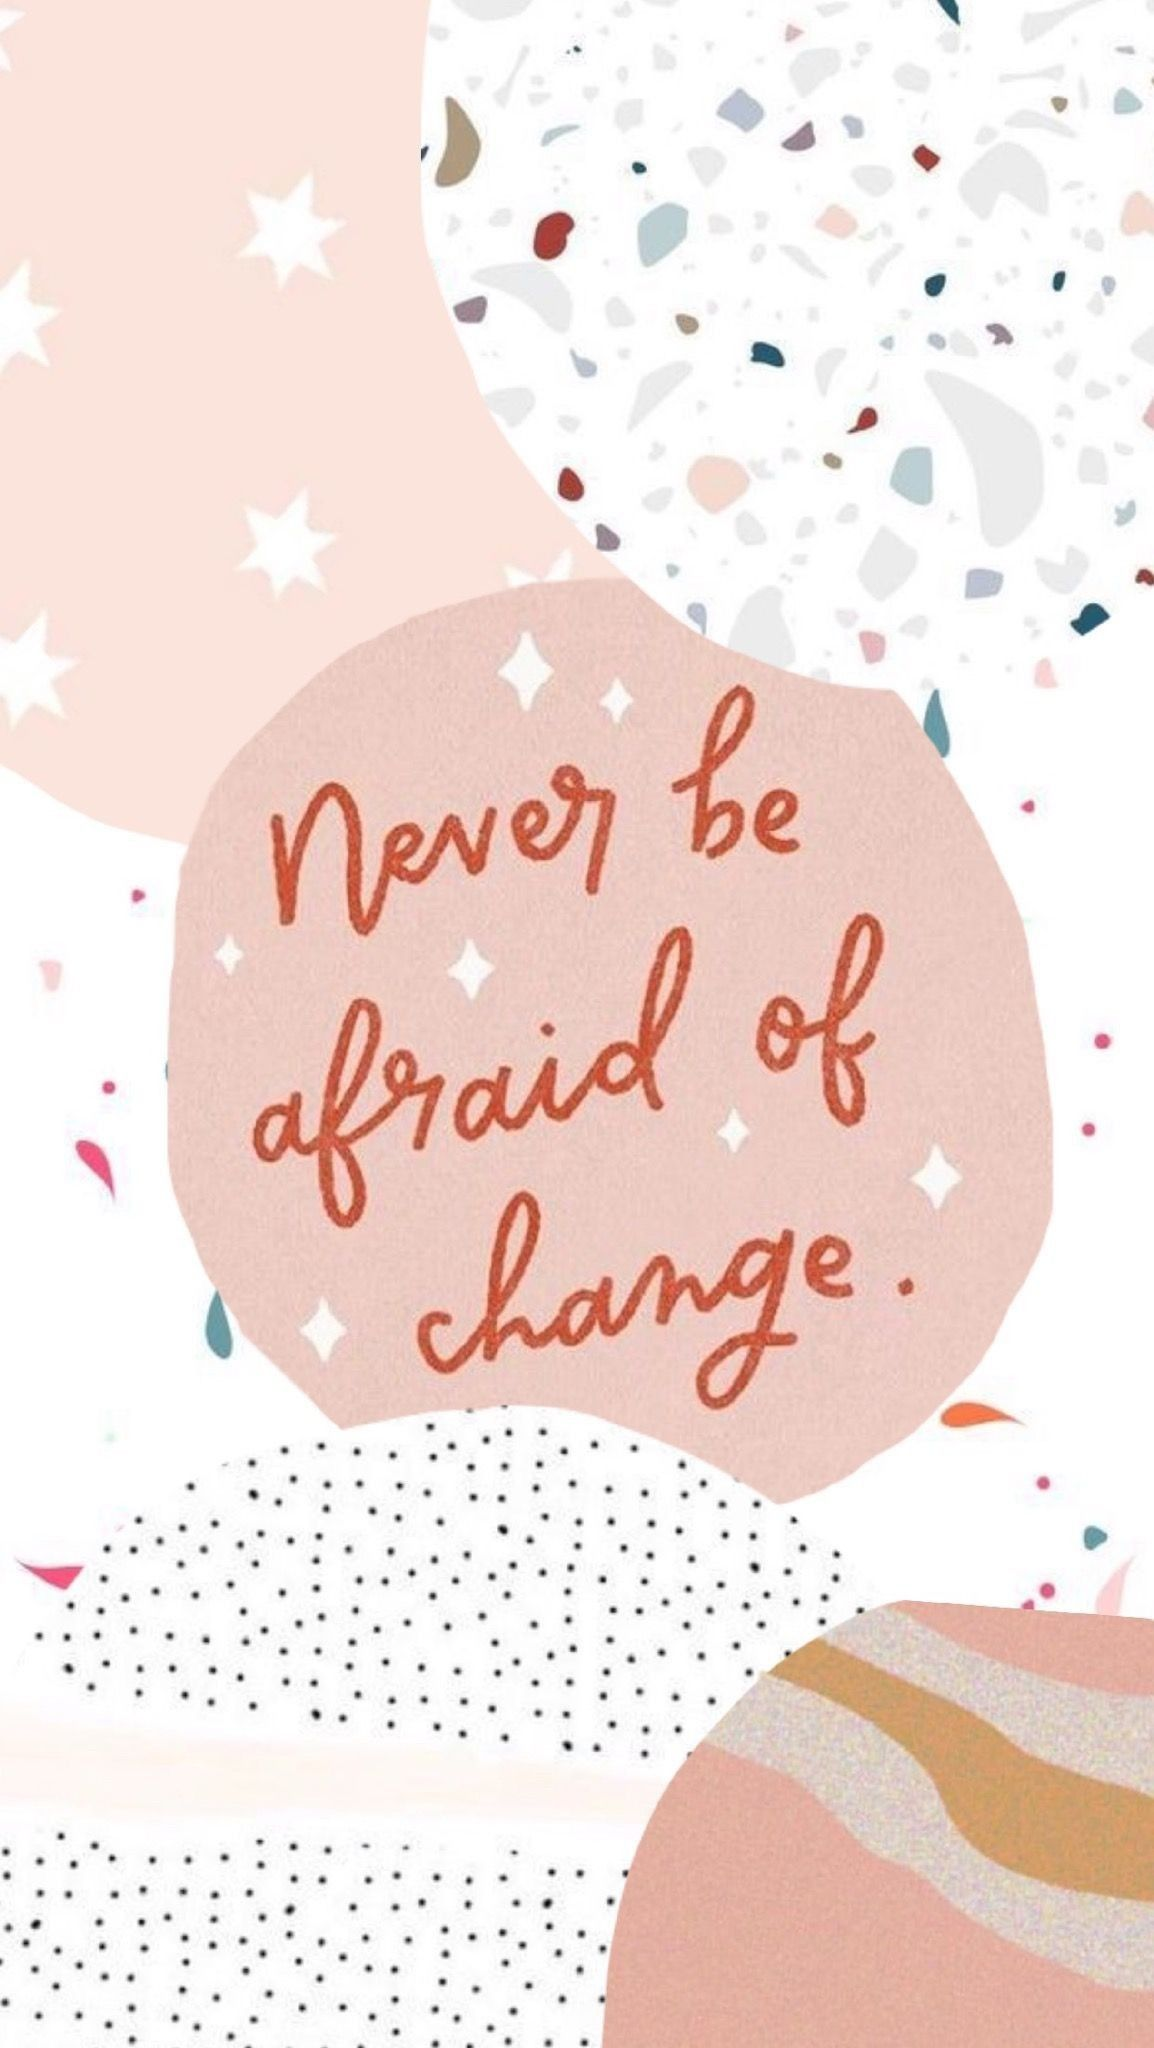 Never be afraid of change Motivational quote